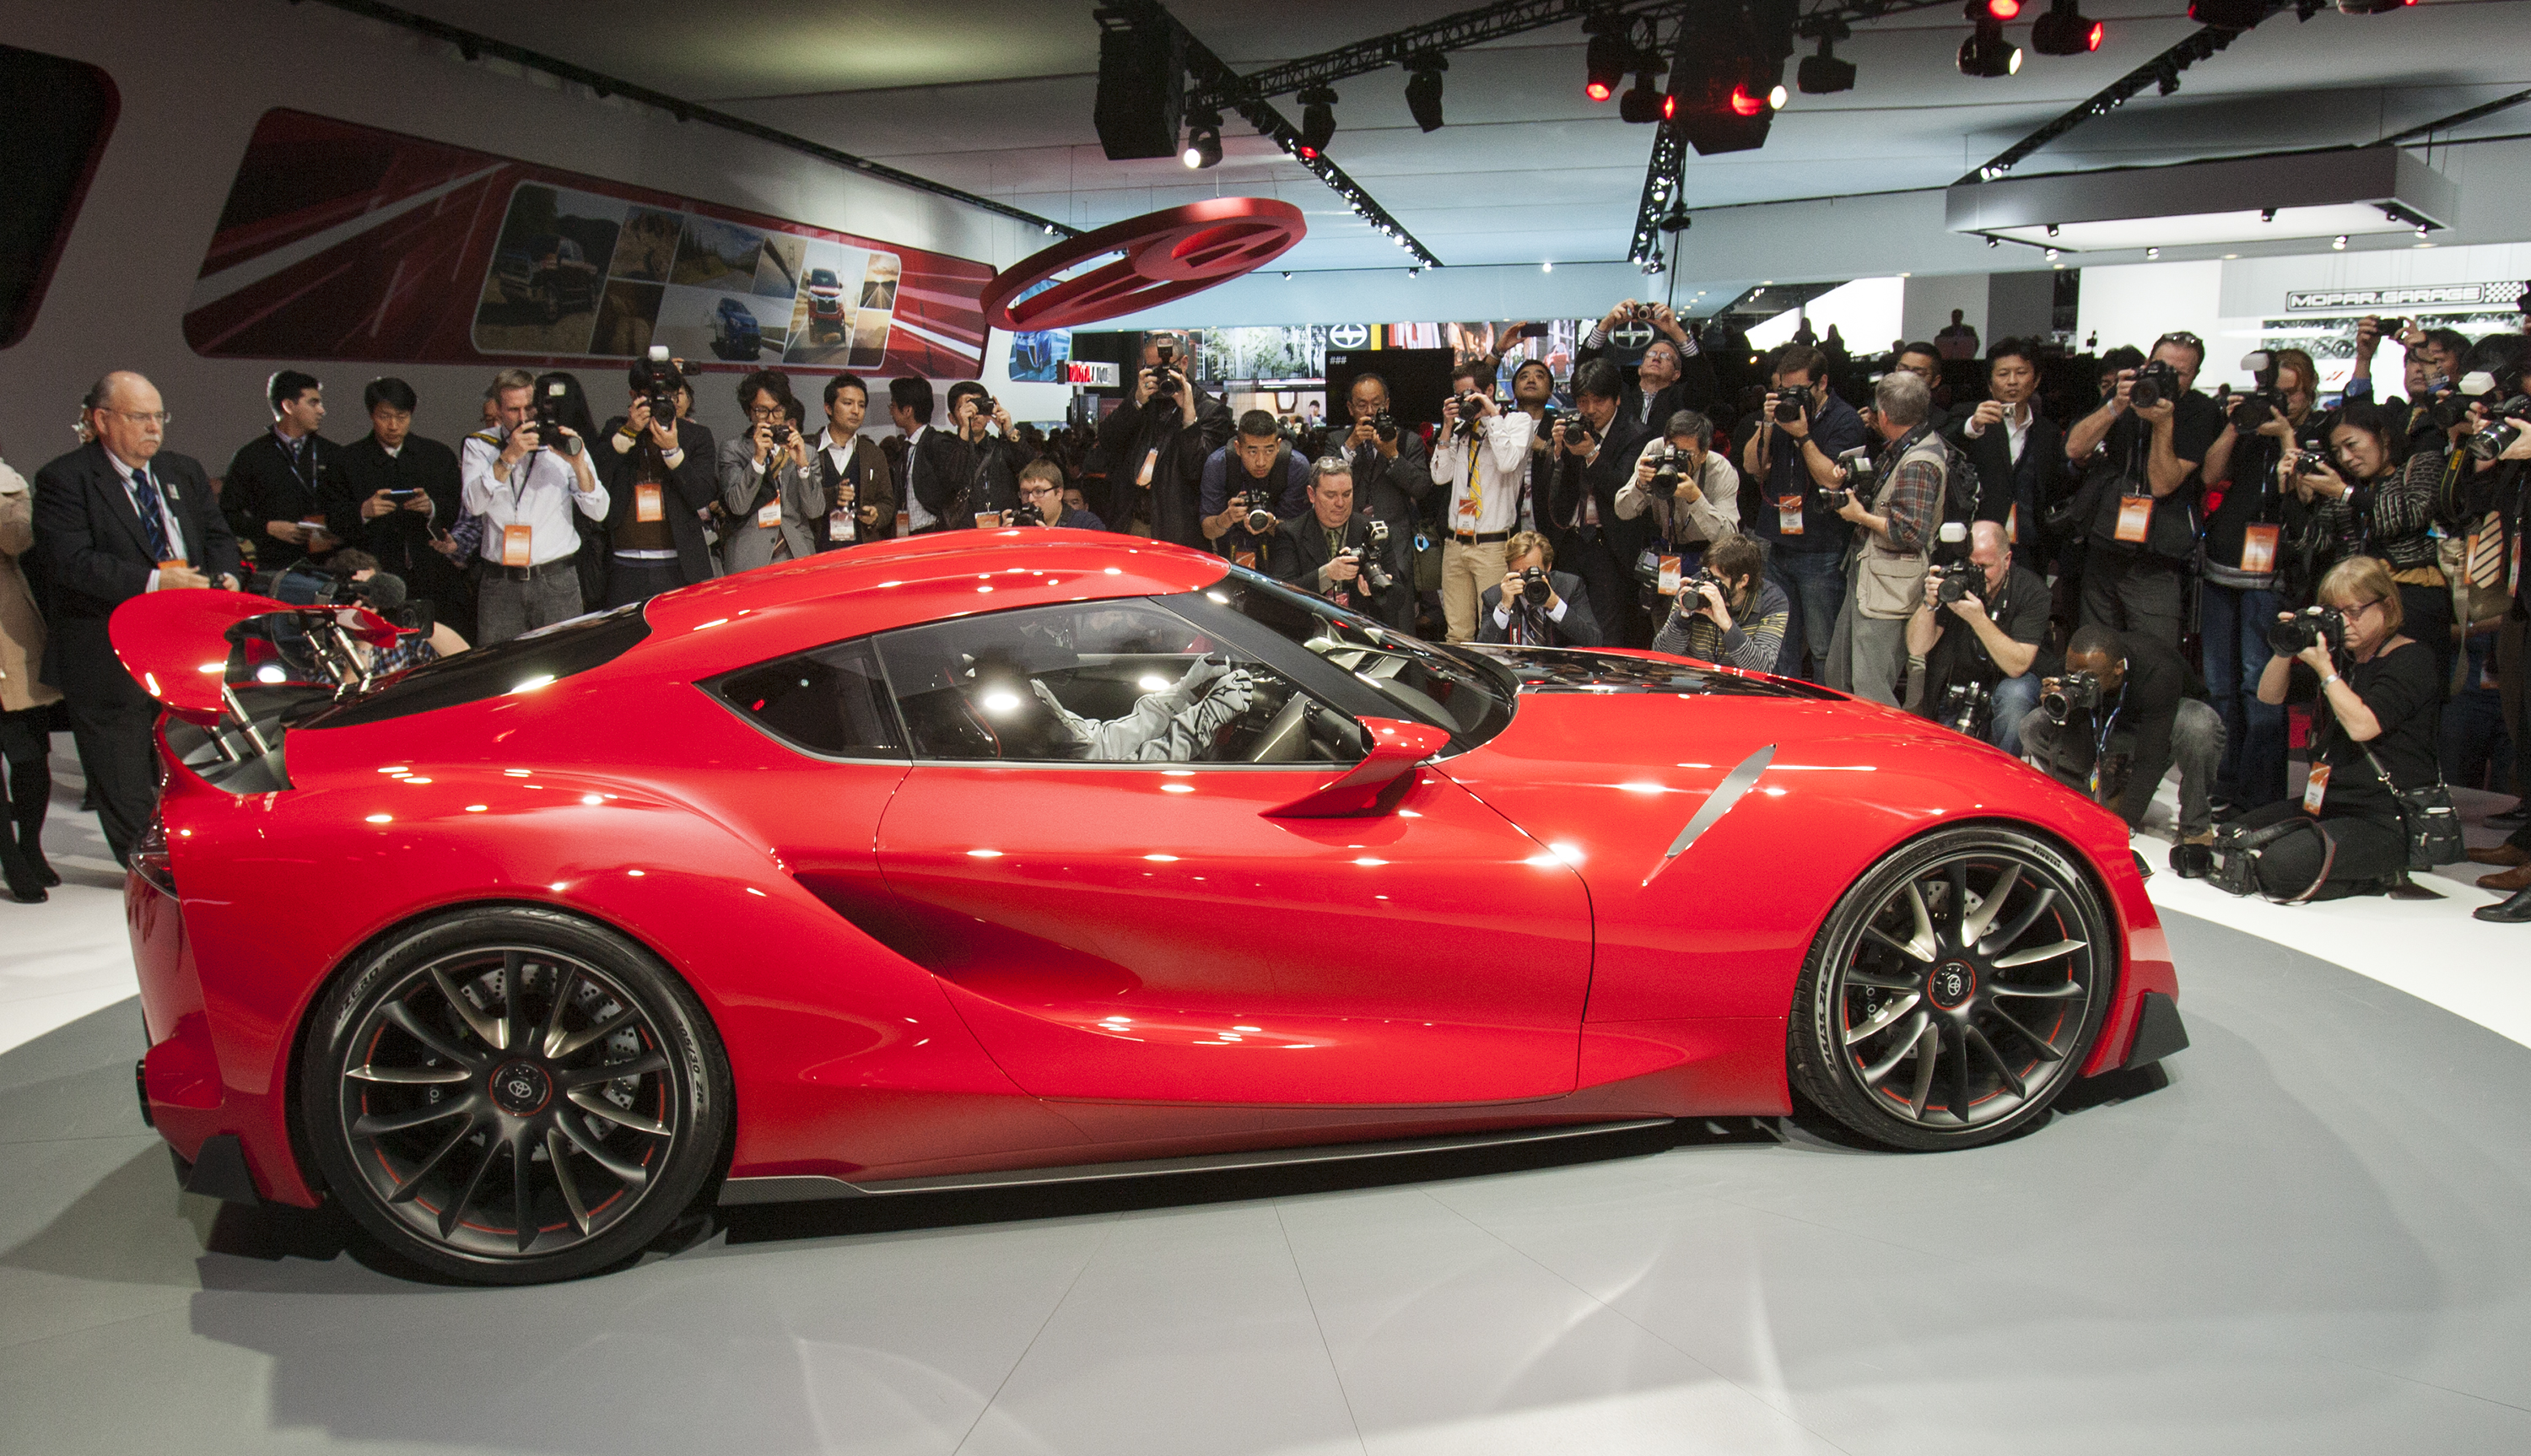 Toyota Ft 1 >> Toyota FT-1 concept shocks Detroit – the next Supra? Paul Tan - Image 222020